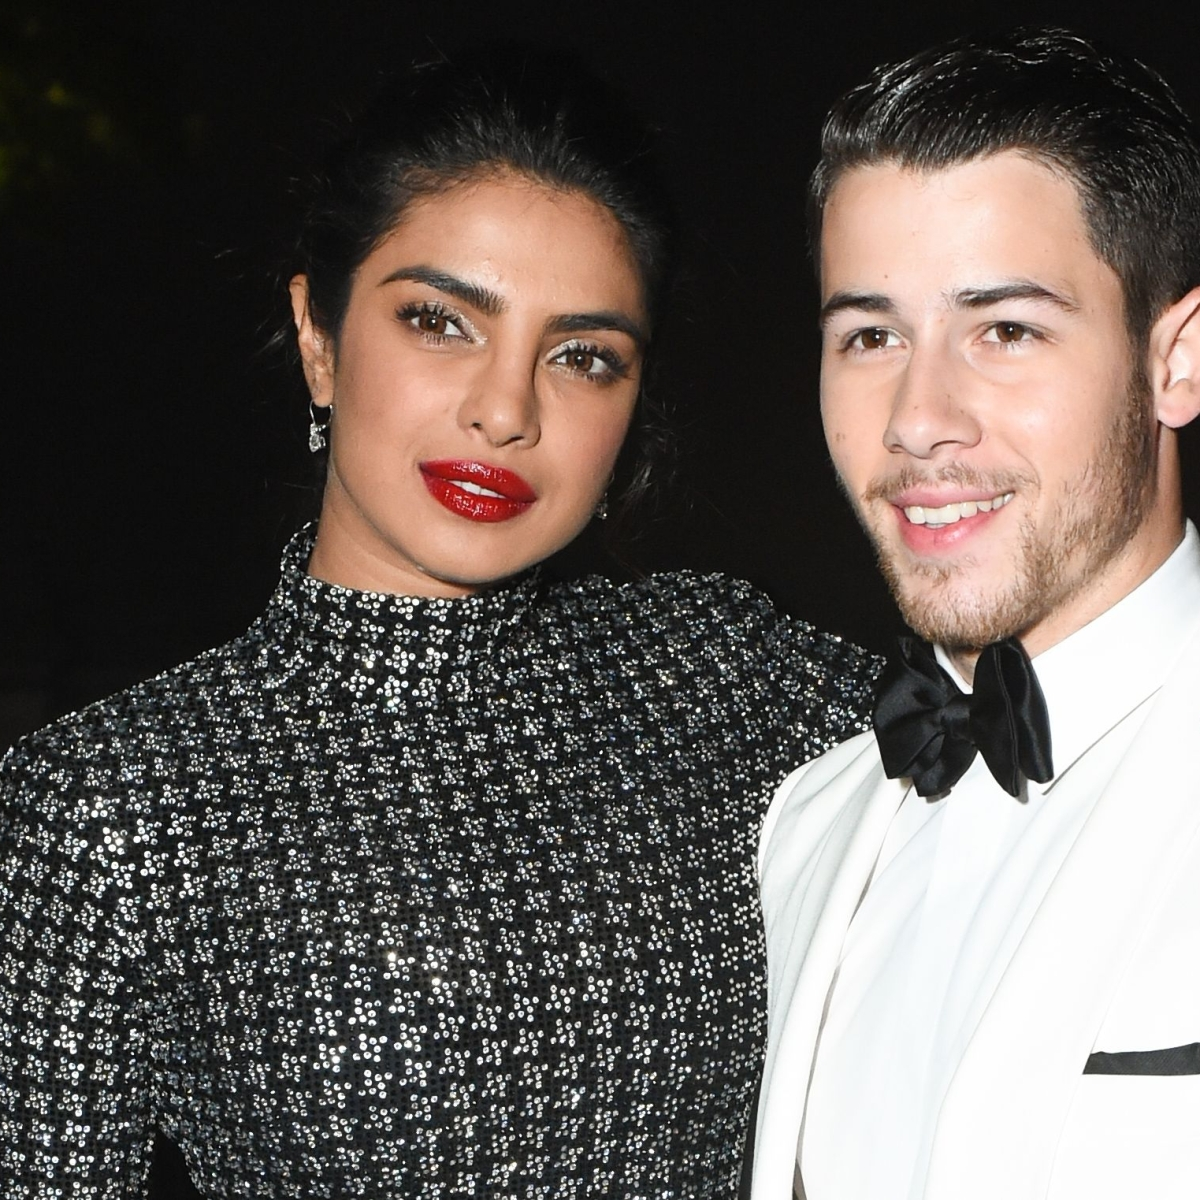 Priyanka Chopra, Nick Jonas raise USD 1 million for COVID-19 relief in India; increase target to USD 3 million